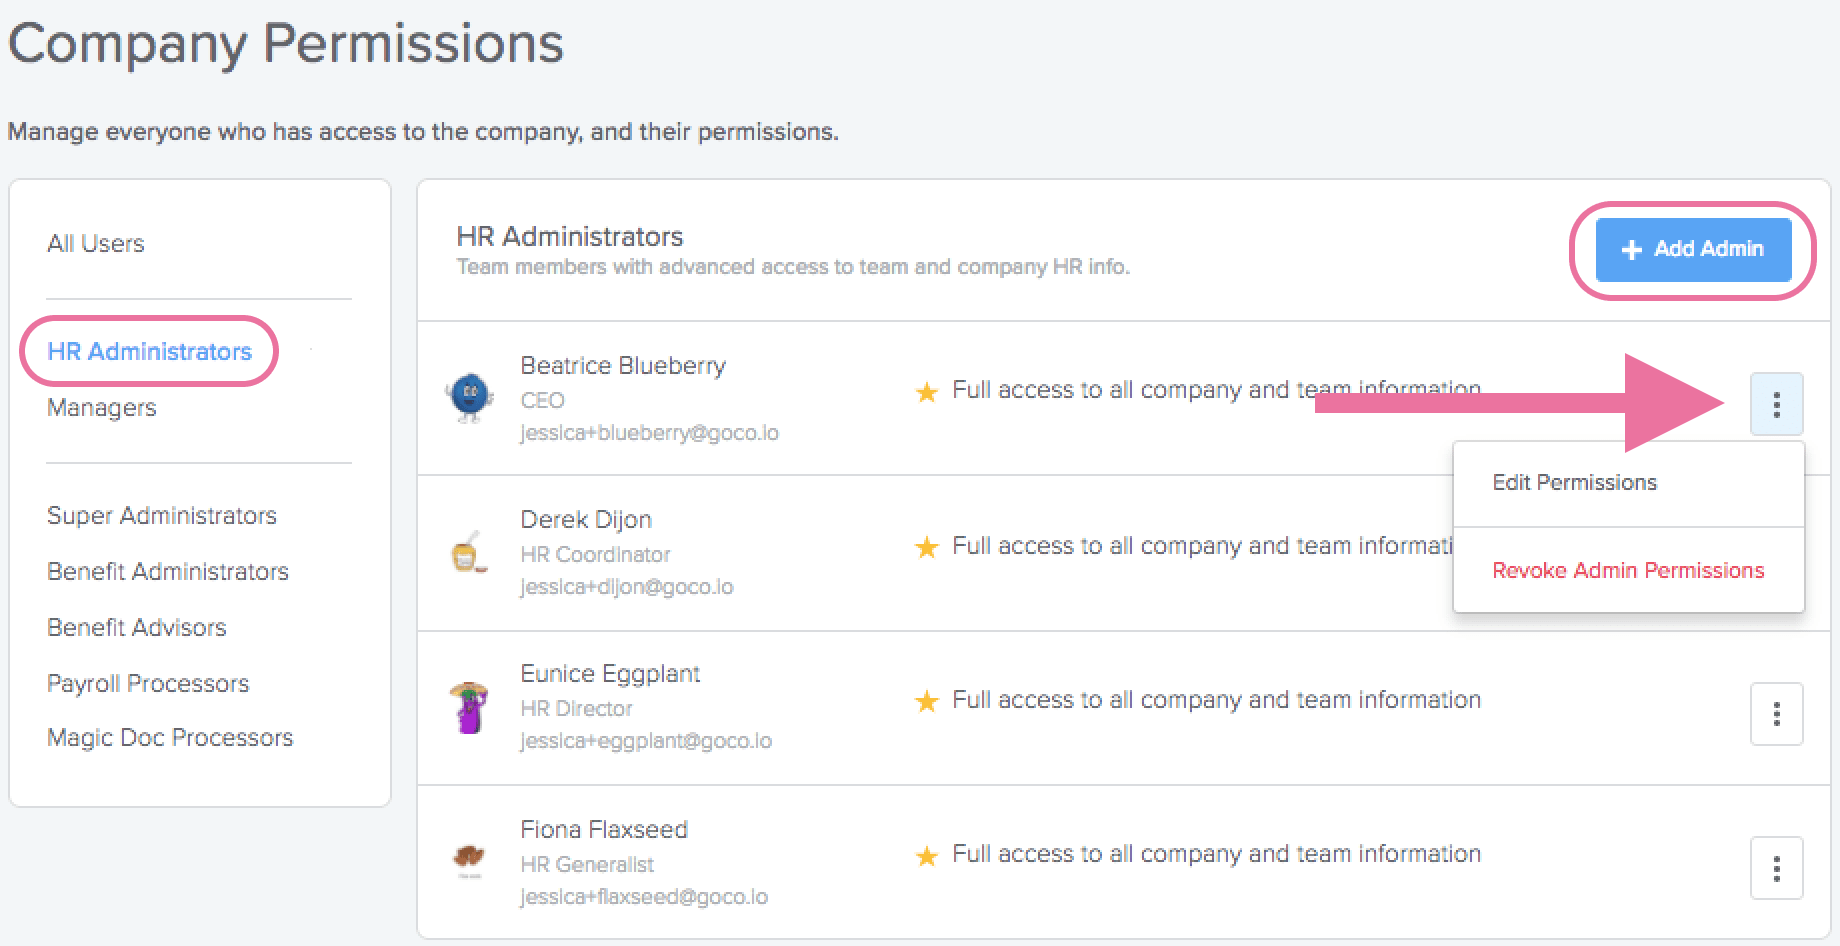 HR Admin Permissions Overview